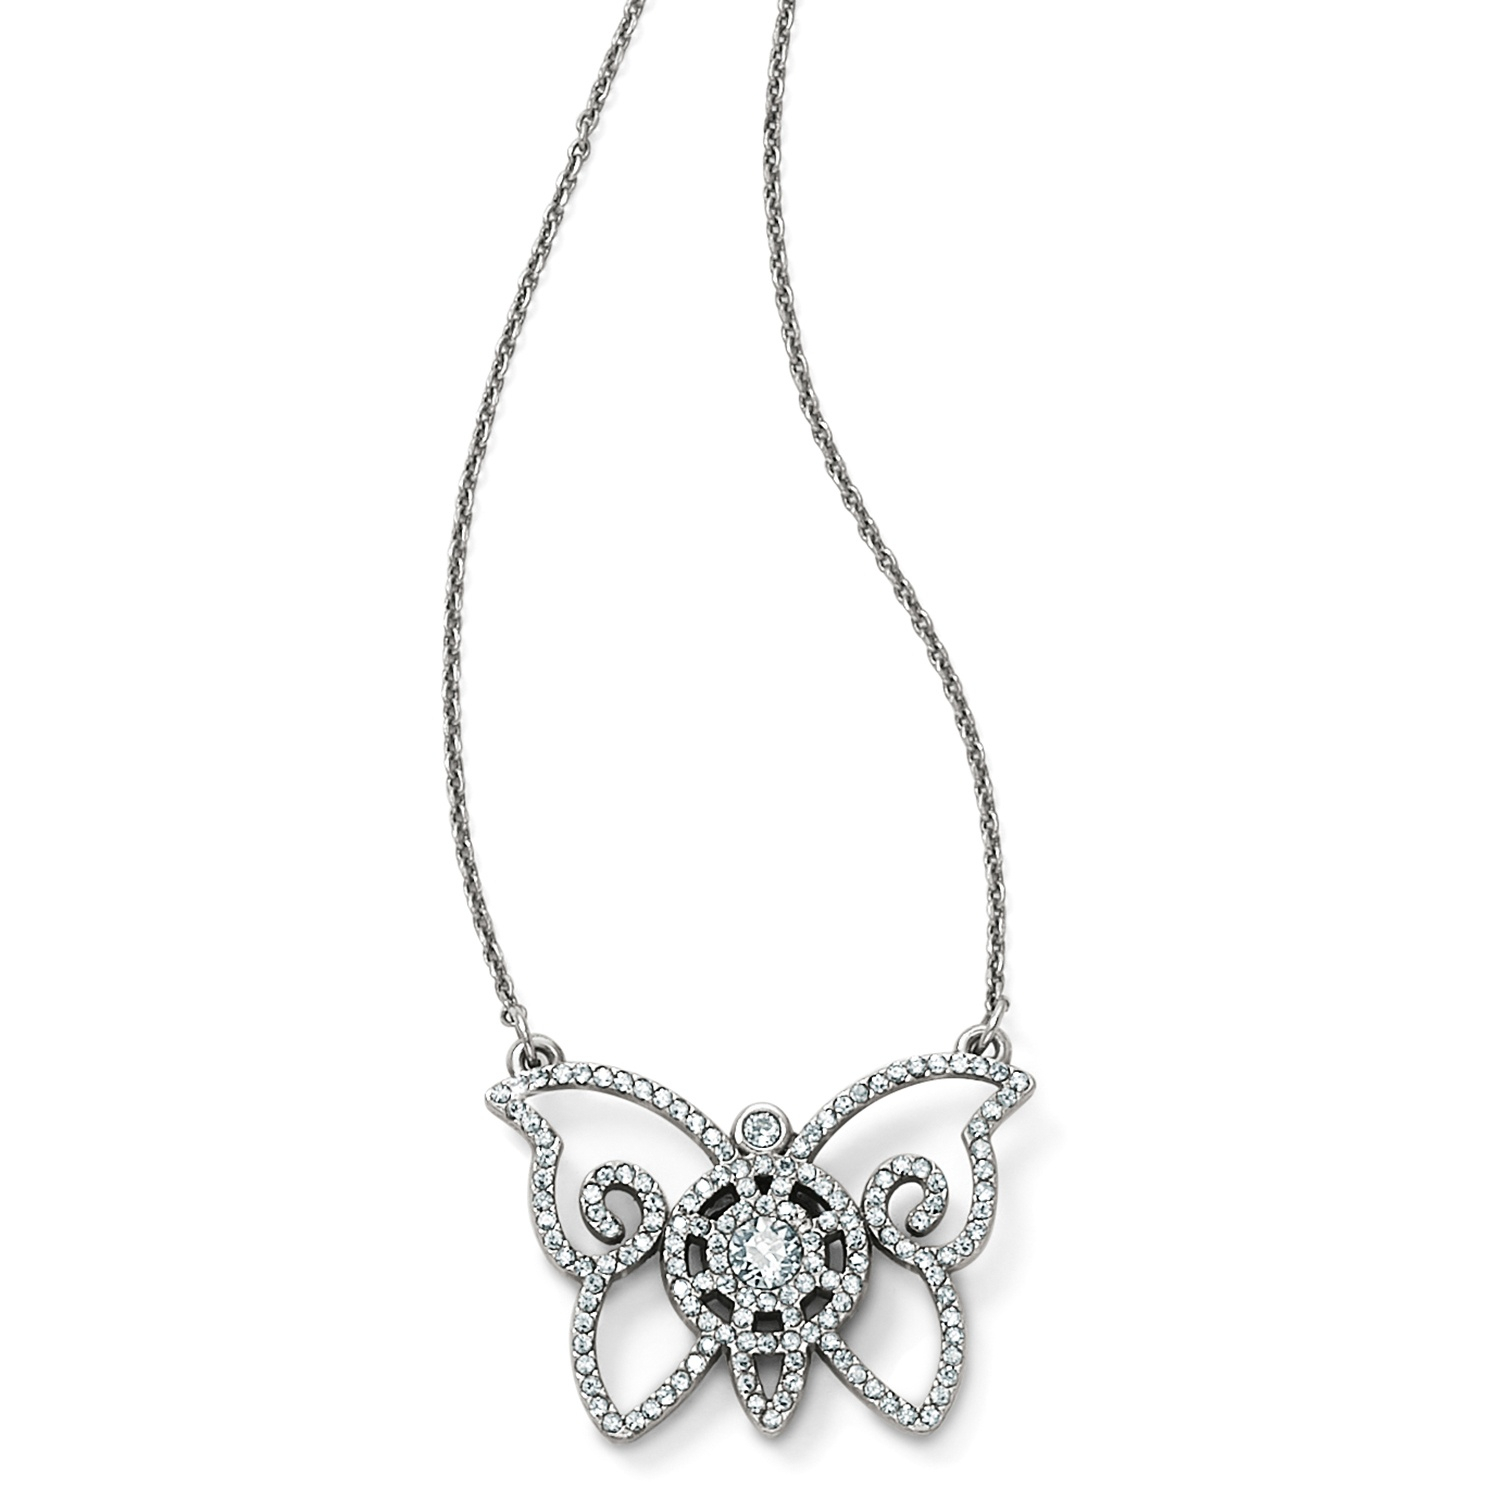 Illumina Petite Butterfly Necklace Intended For Latest Sparkling Butterfly Y  Necklaces (Gallery 20 of 25)